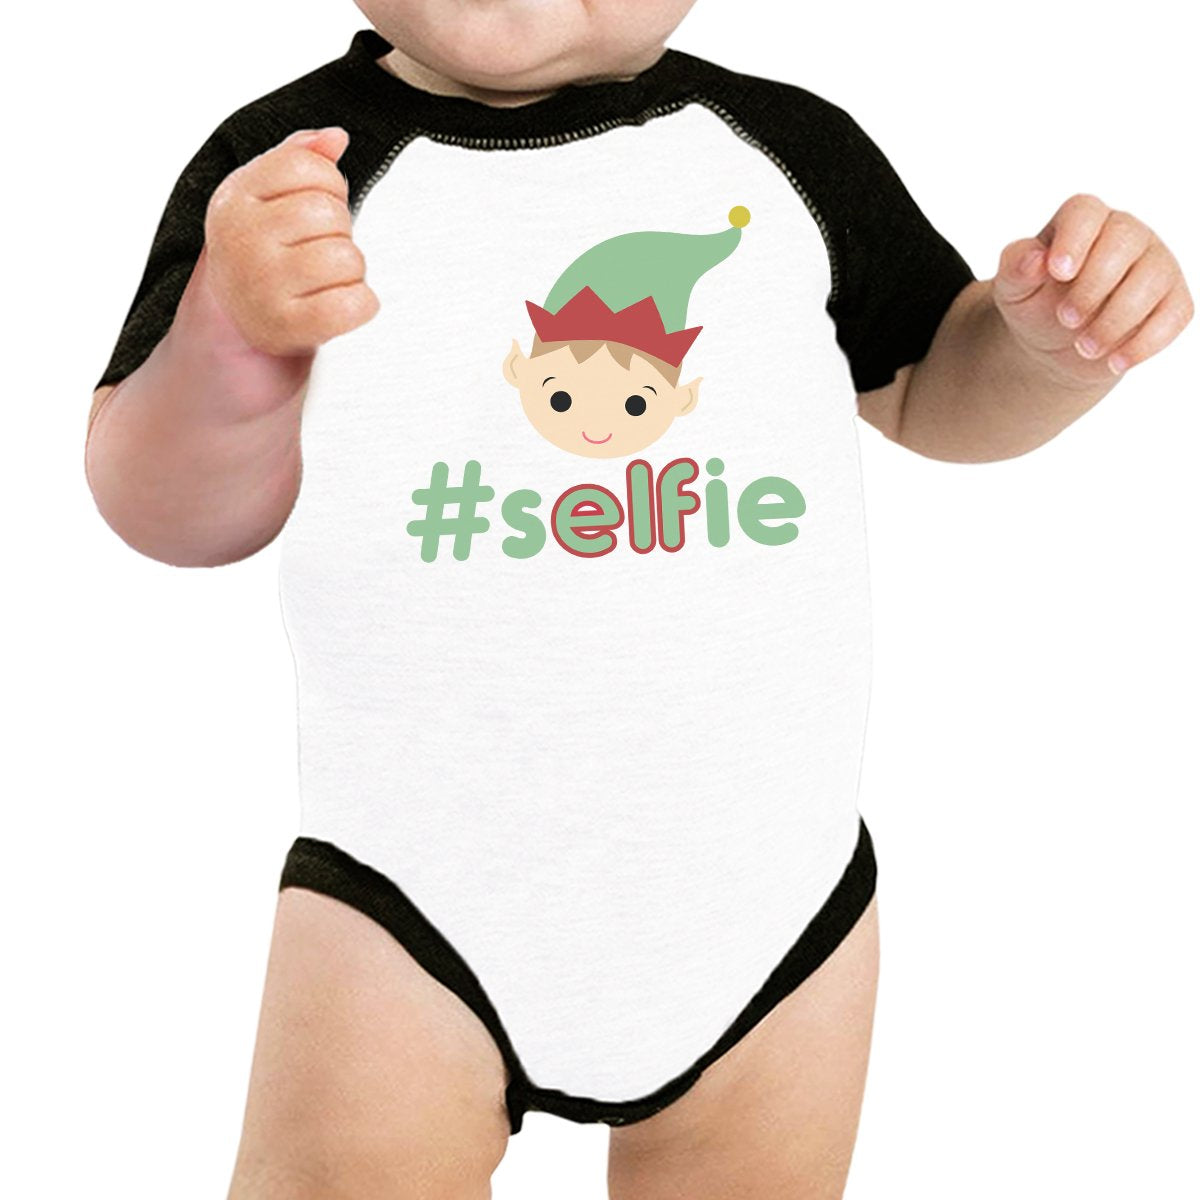 Hashtag Selfie Elf Baby Black And White Baseball Shirt